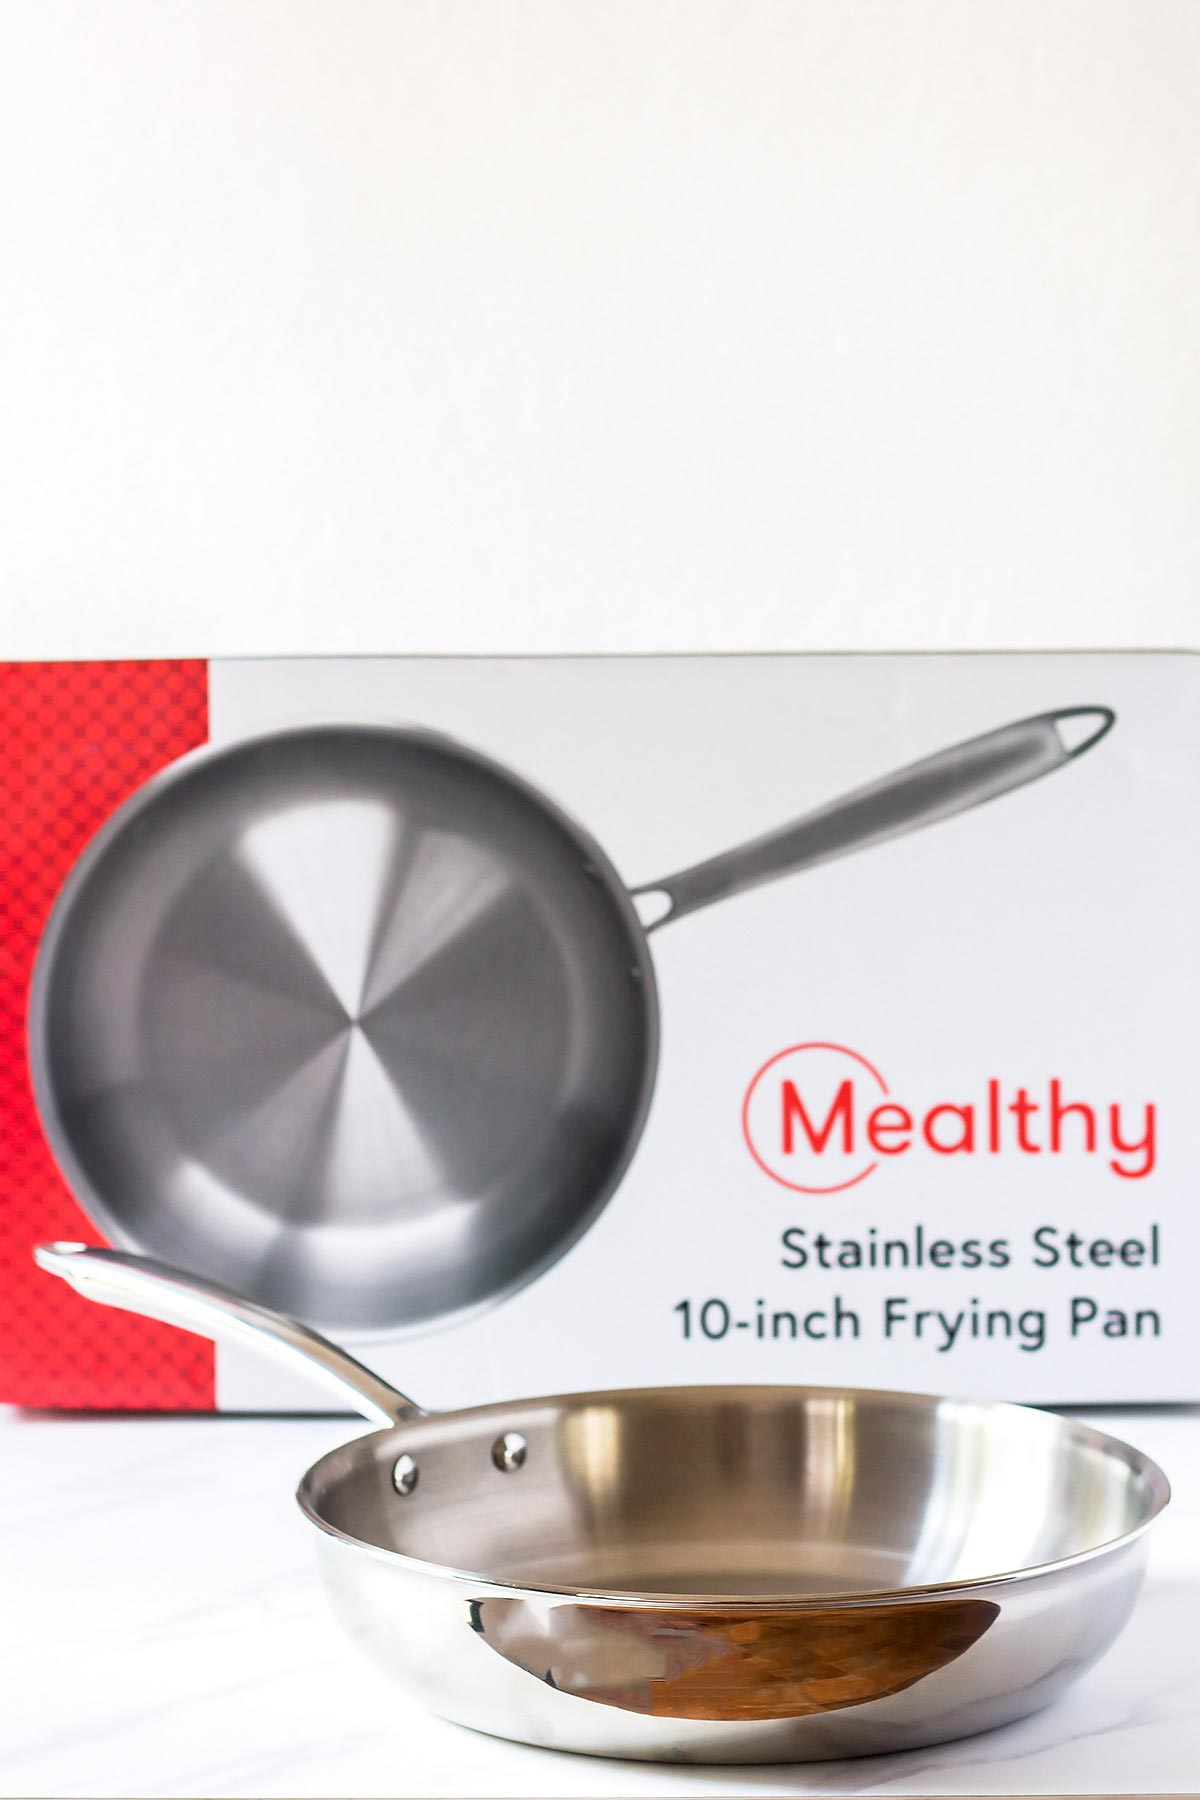 Stainless Steel Frying Pan with Box